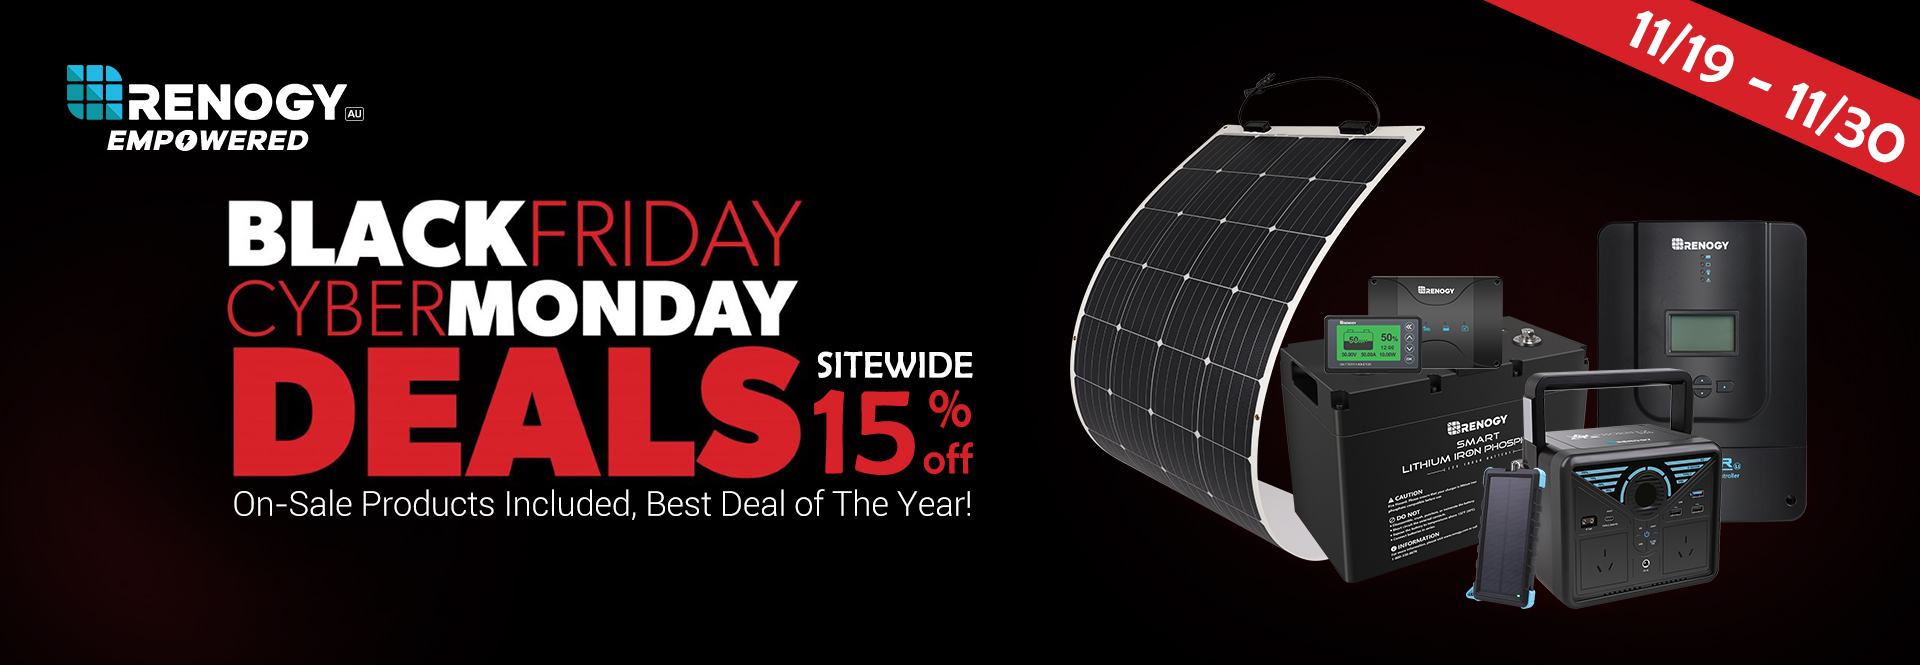 Take 15 Off On Black Friday Deals Renogy Australia High Quality Solar Products